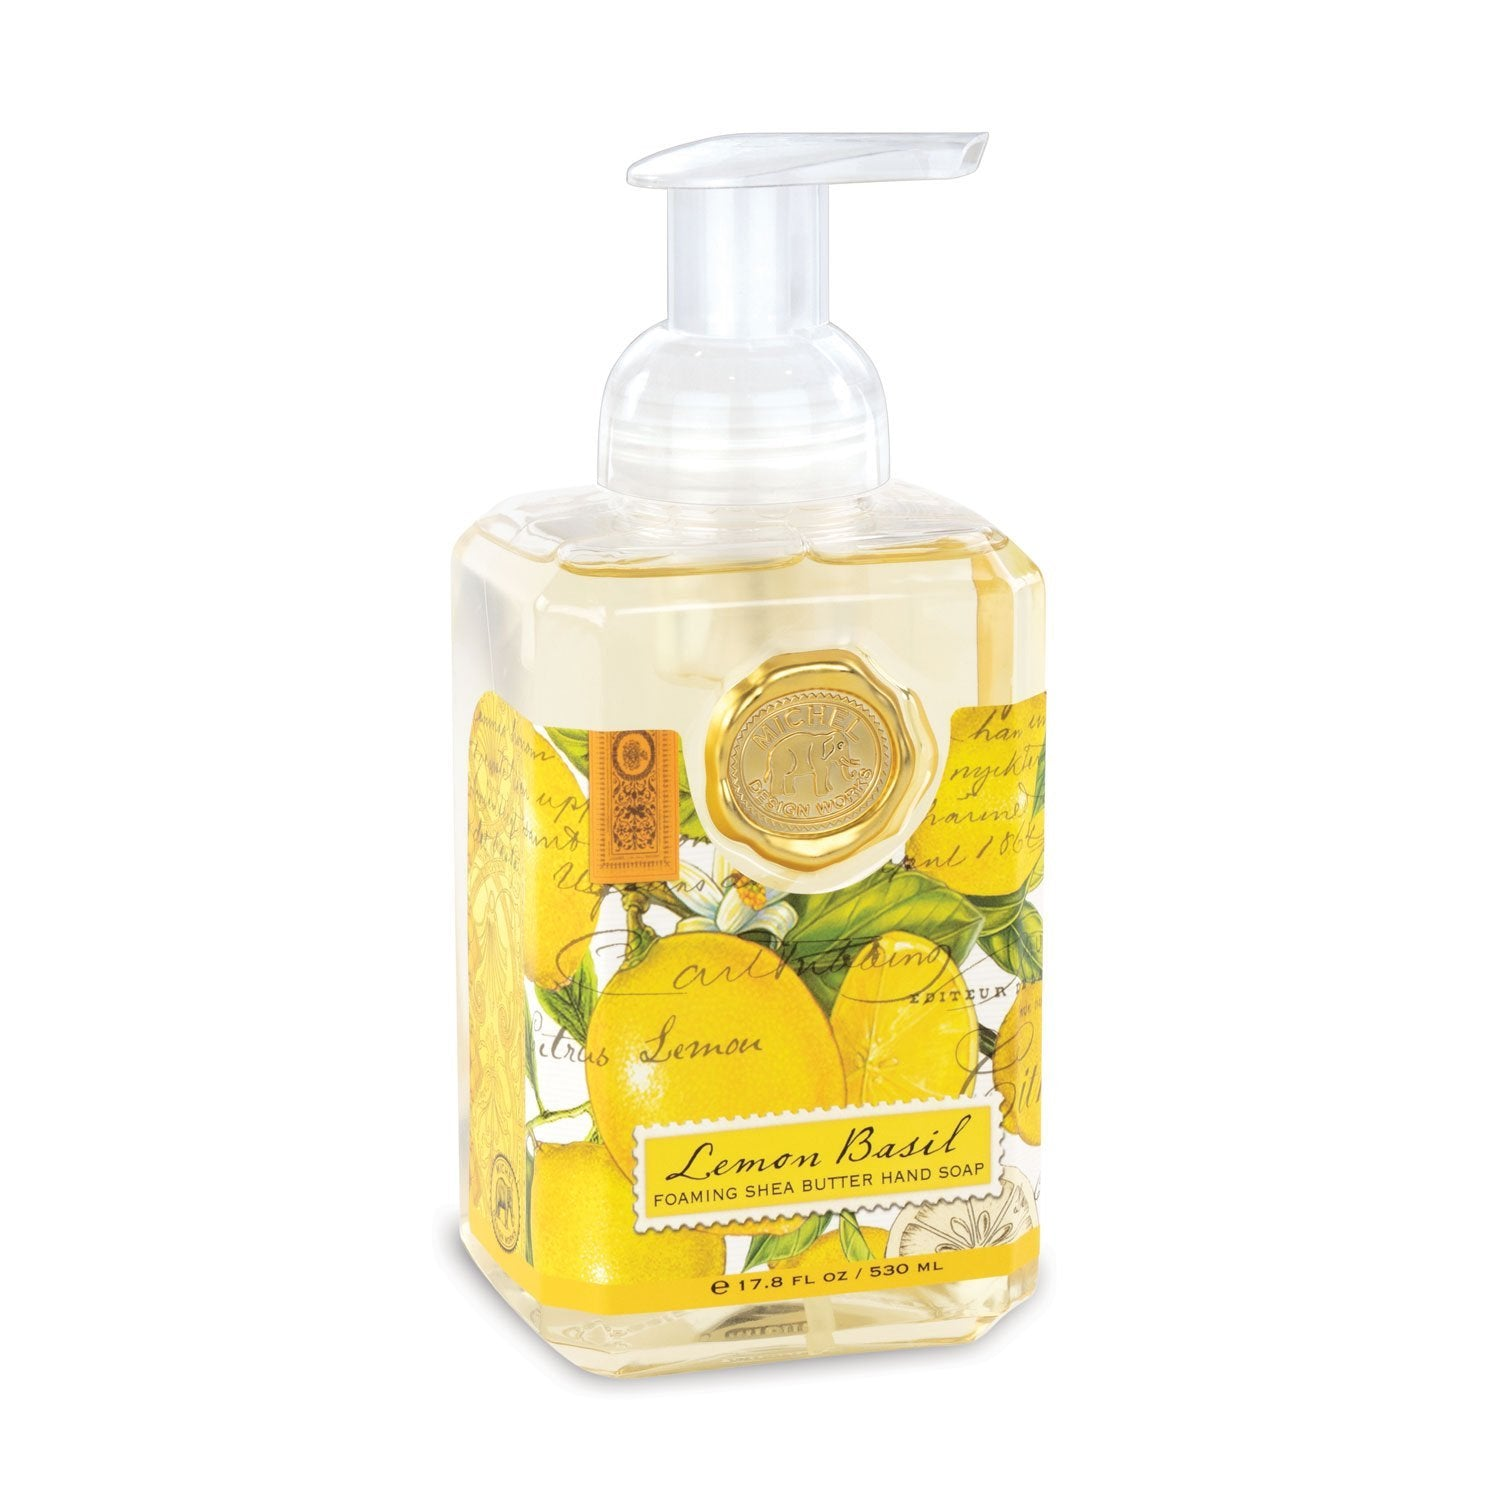 LEMON BASIL FOAMING HAND SOAP FOA8 - Molly's! A Chic and Unique Boutique